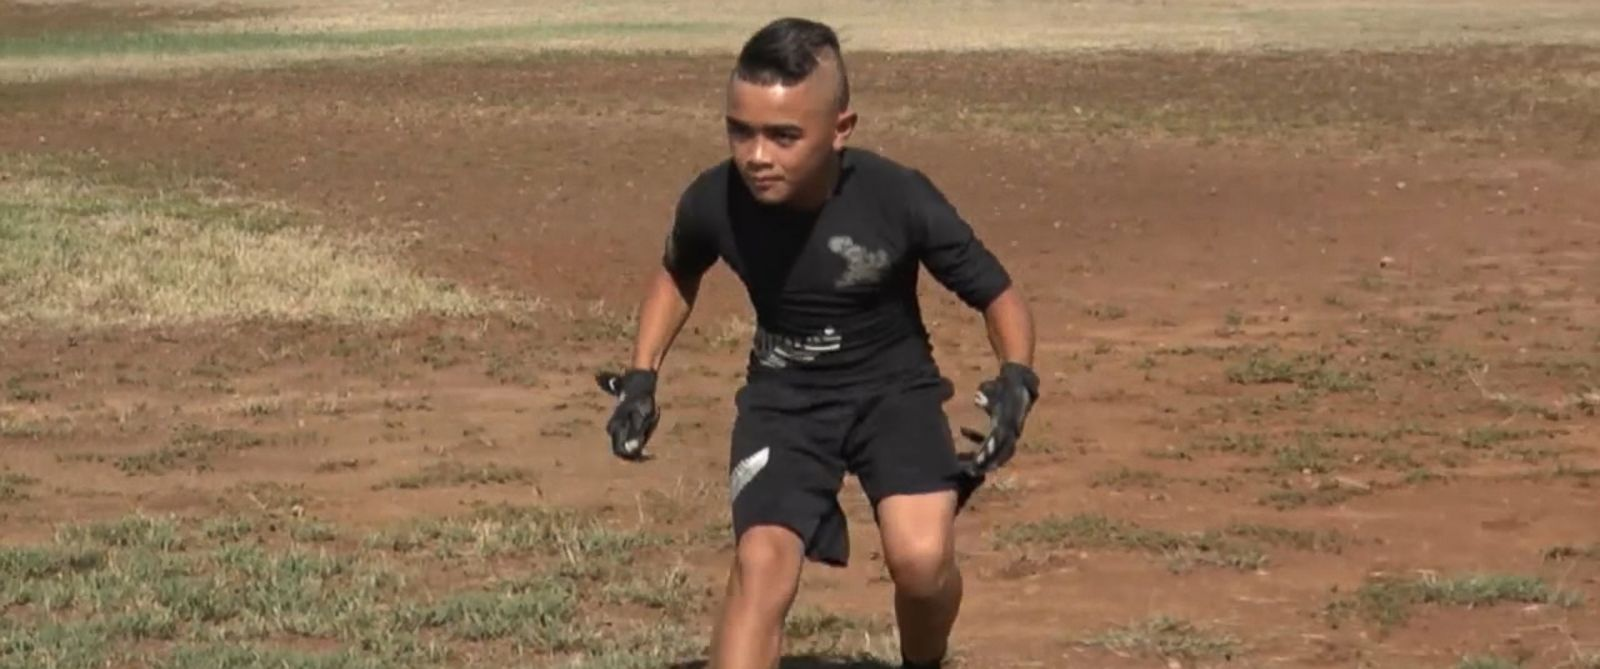 VIDEO: Tito Lacaden is a wide receiver for the All-Blacks Crusaders in Kapolei, Hawaii.